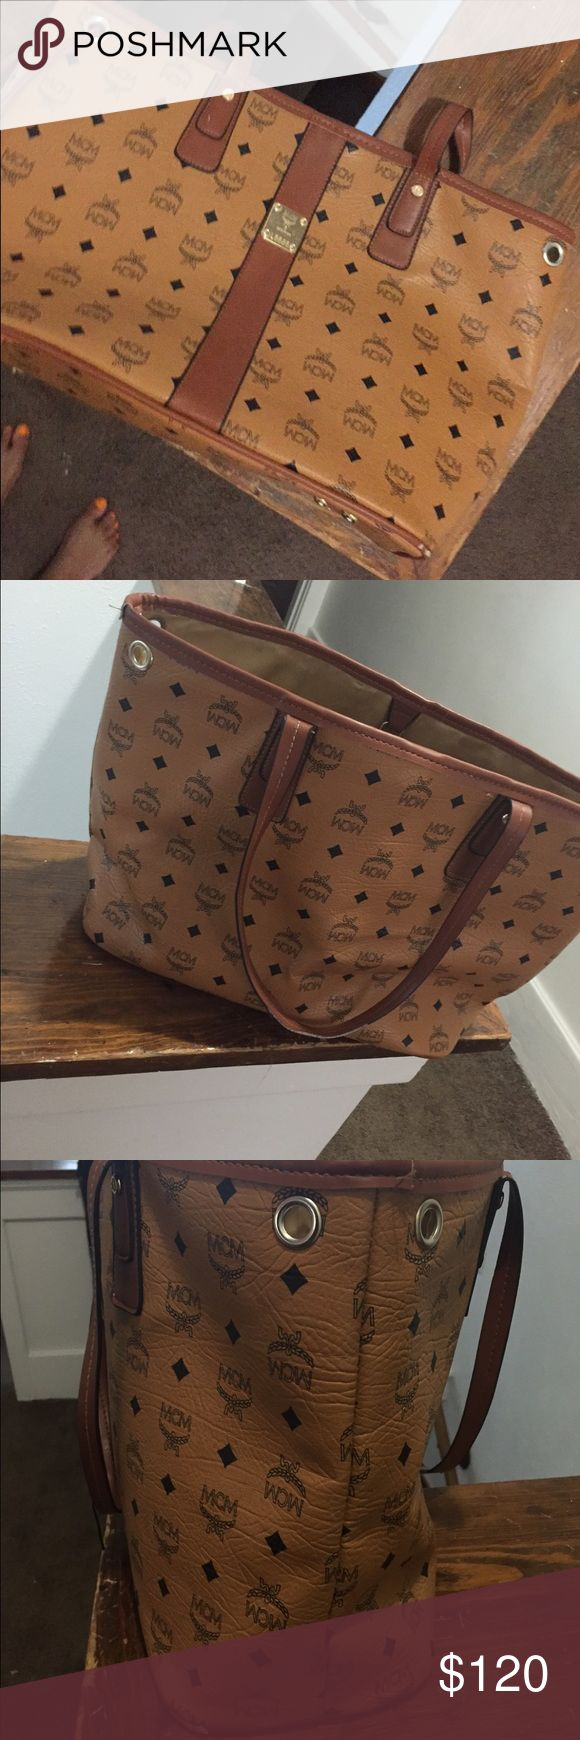 More pictures for MCM bag listing. Price reflects authenticity. Flaws are shown in pictures. 💖 MCM Bags Totes